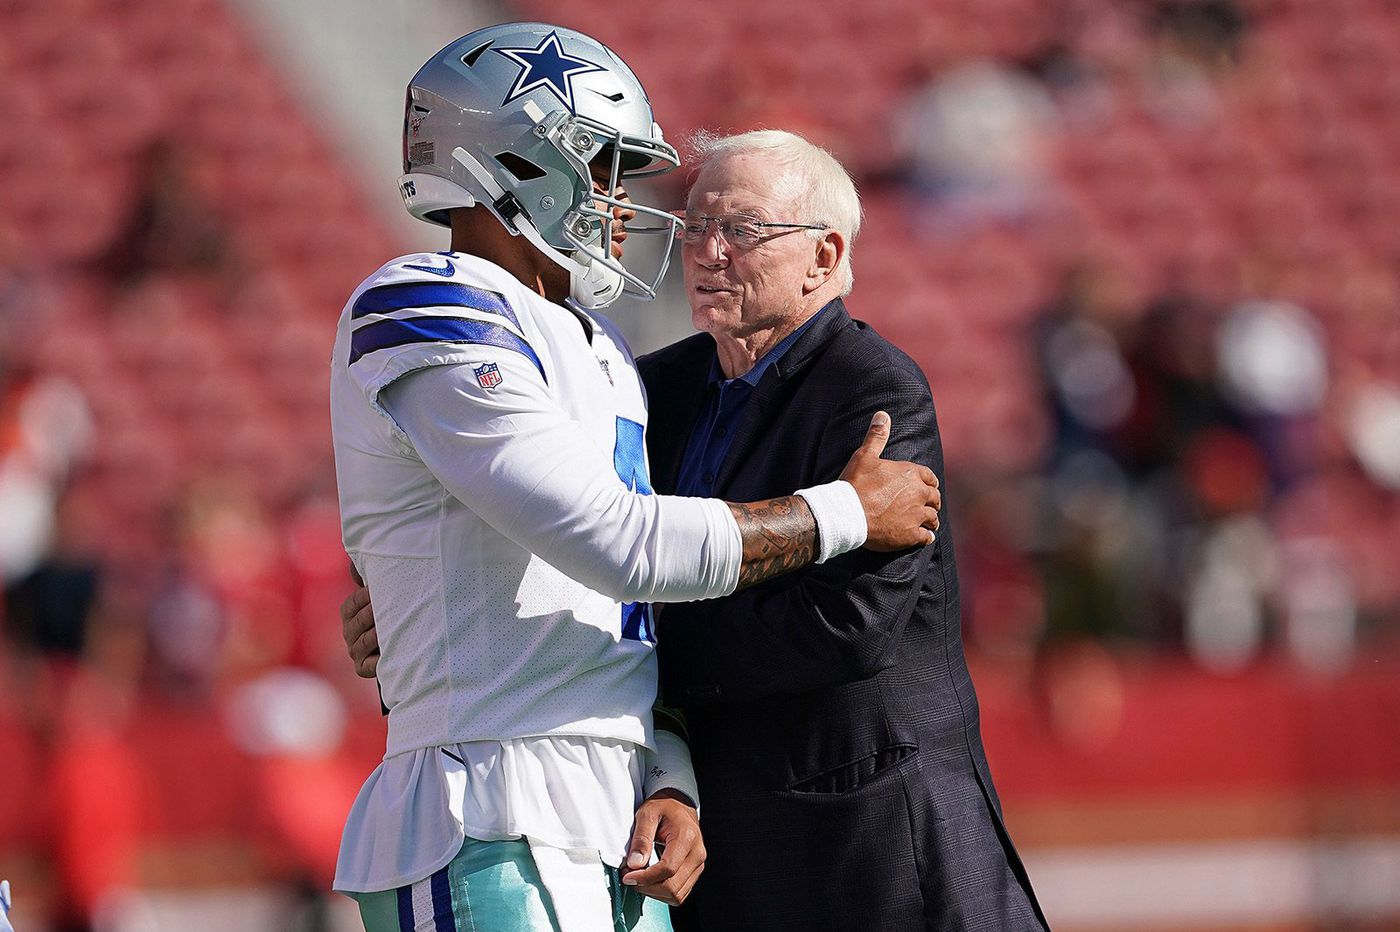 NFL free-agency tracker: Cowboys place franchise tag on Dak Prescott, re-sign Amari Cooper; How Monday's moves impact Eagles